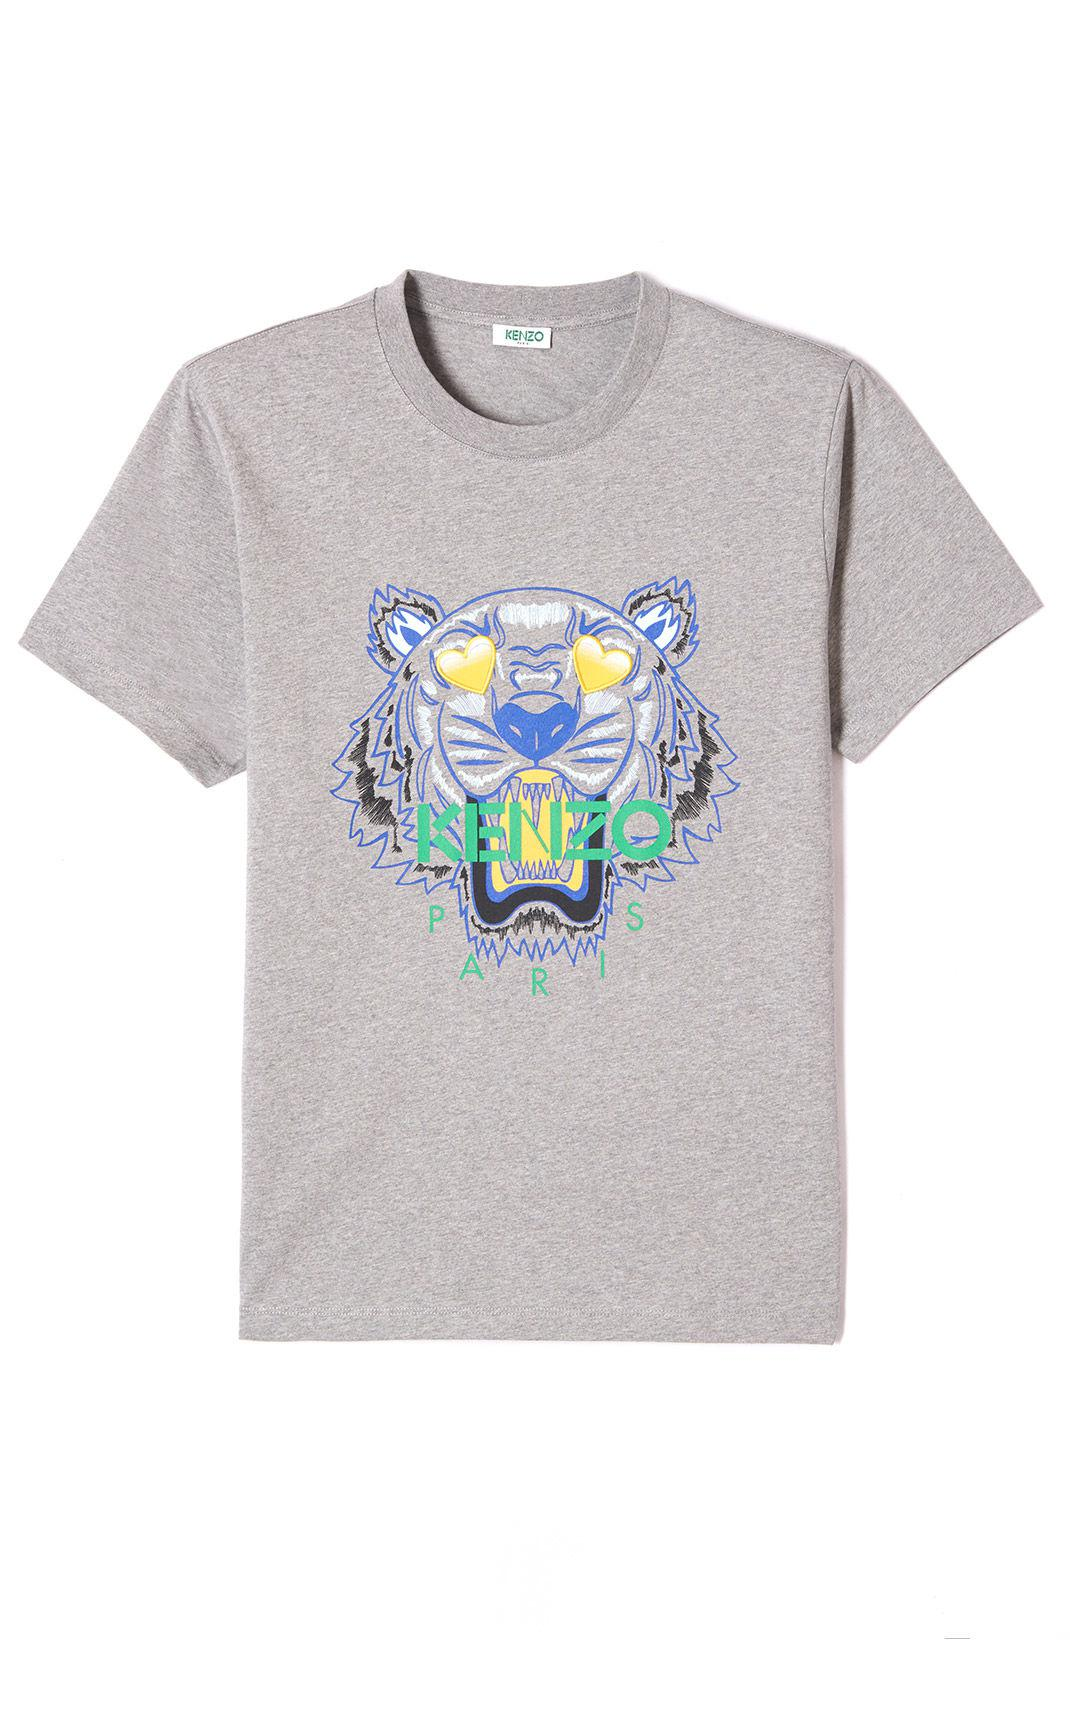 8b56a02696 Lyst - Kenzo 'valentine's Day Capsule' Tiger T-shirt in Gray for Men